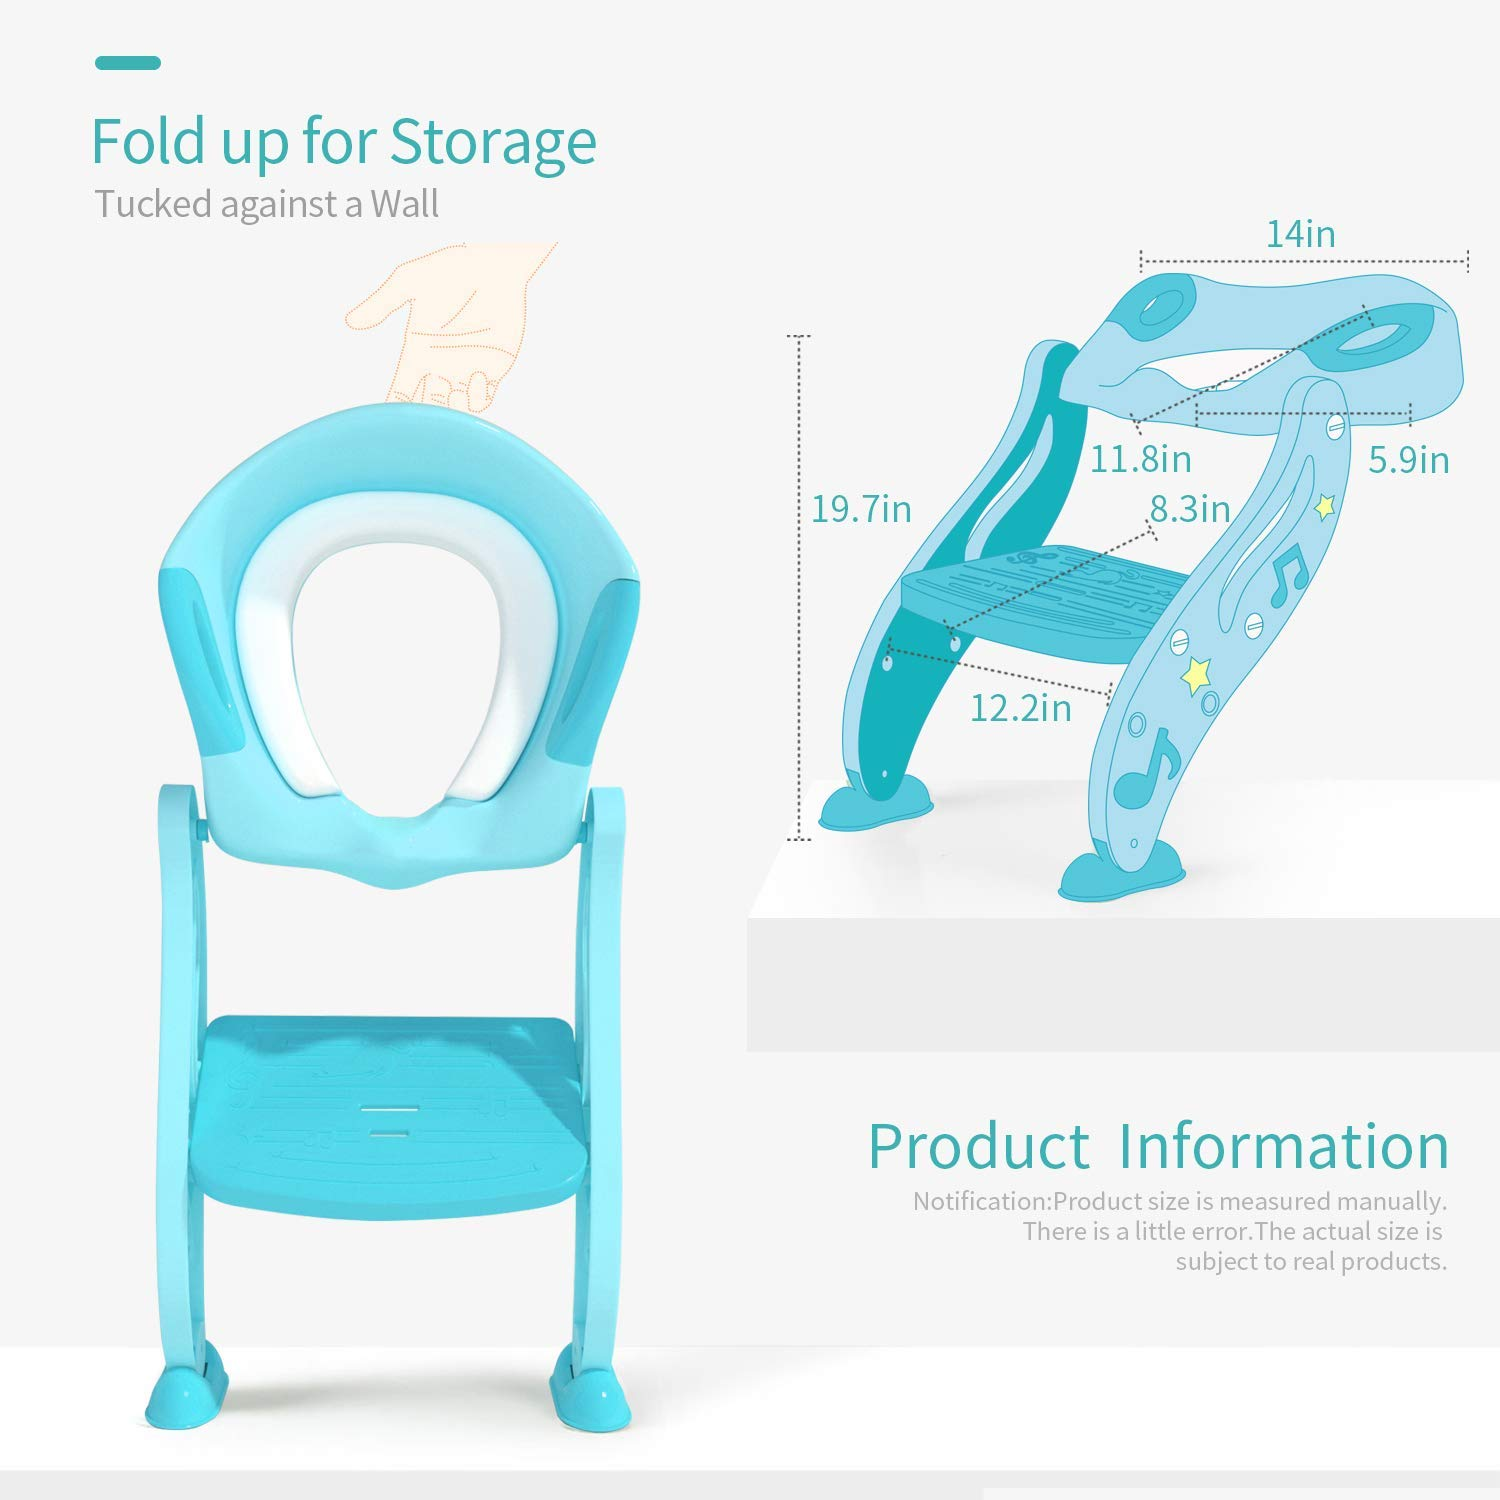 Comfortable Handles And Splash Guard Potty Training Seat for Kids,Adjustable Toddler Toilet Potty Chair with Sturdy Non-Slip Step Stool Ladder Easy To Assemble Toilet Seat for Boys And Girls,Blue